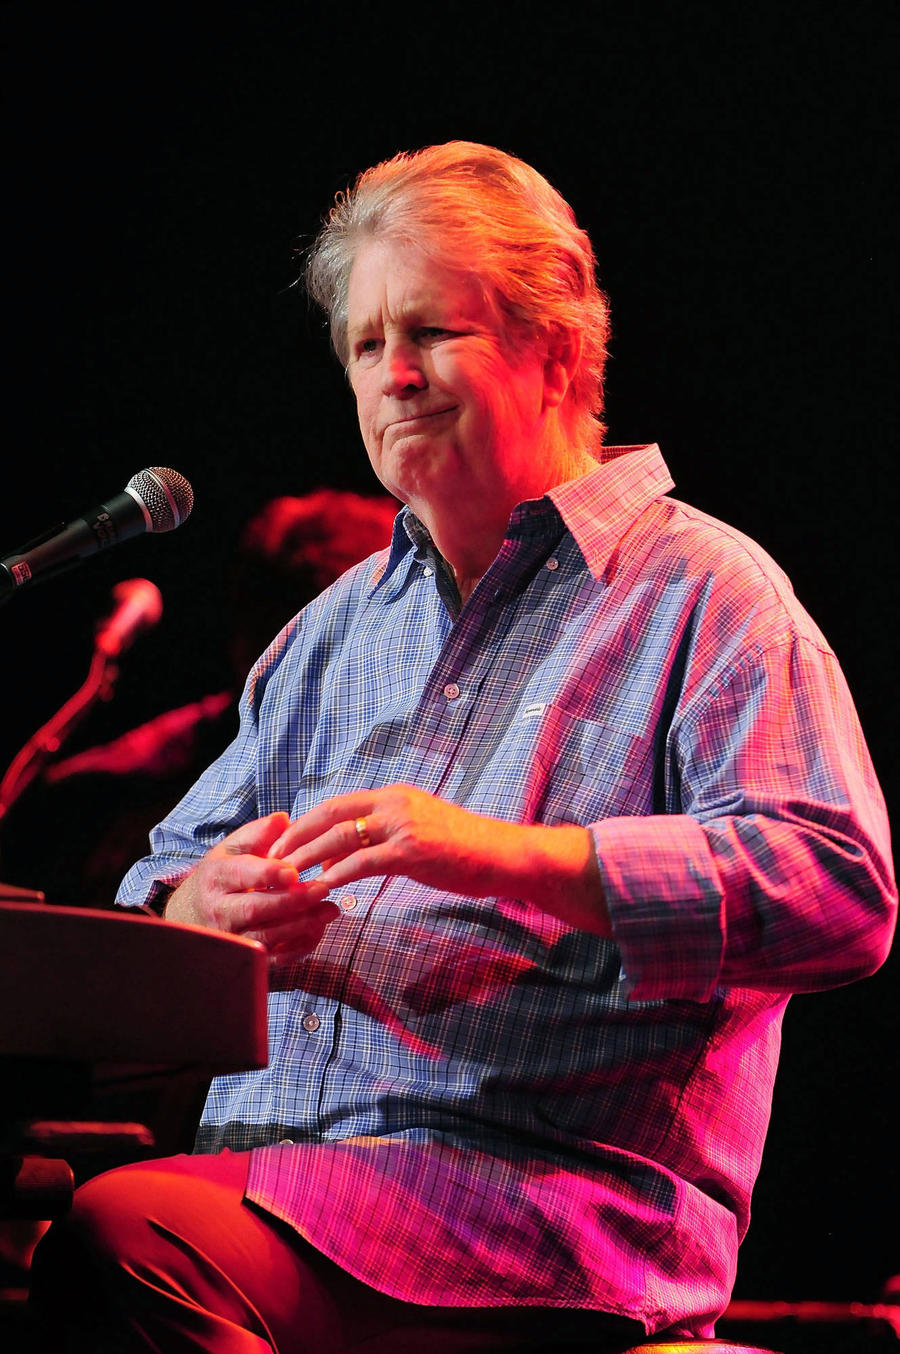 Brian Wilson: 'I'm All Clean After Giving Up Alcohol Over Three Years Ago'